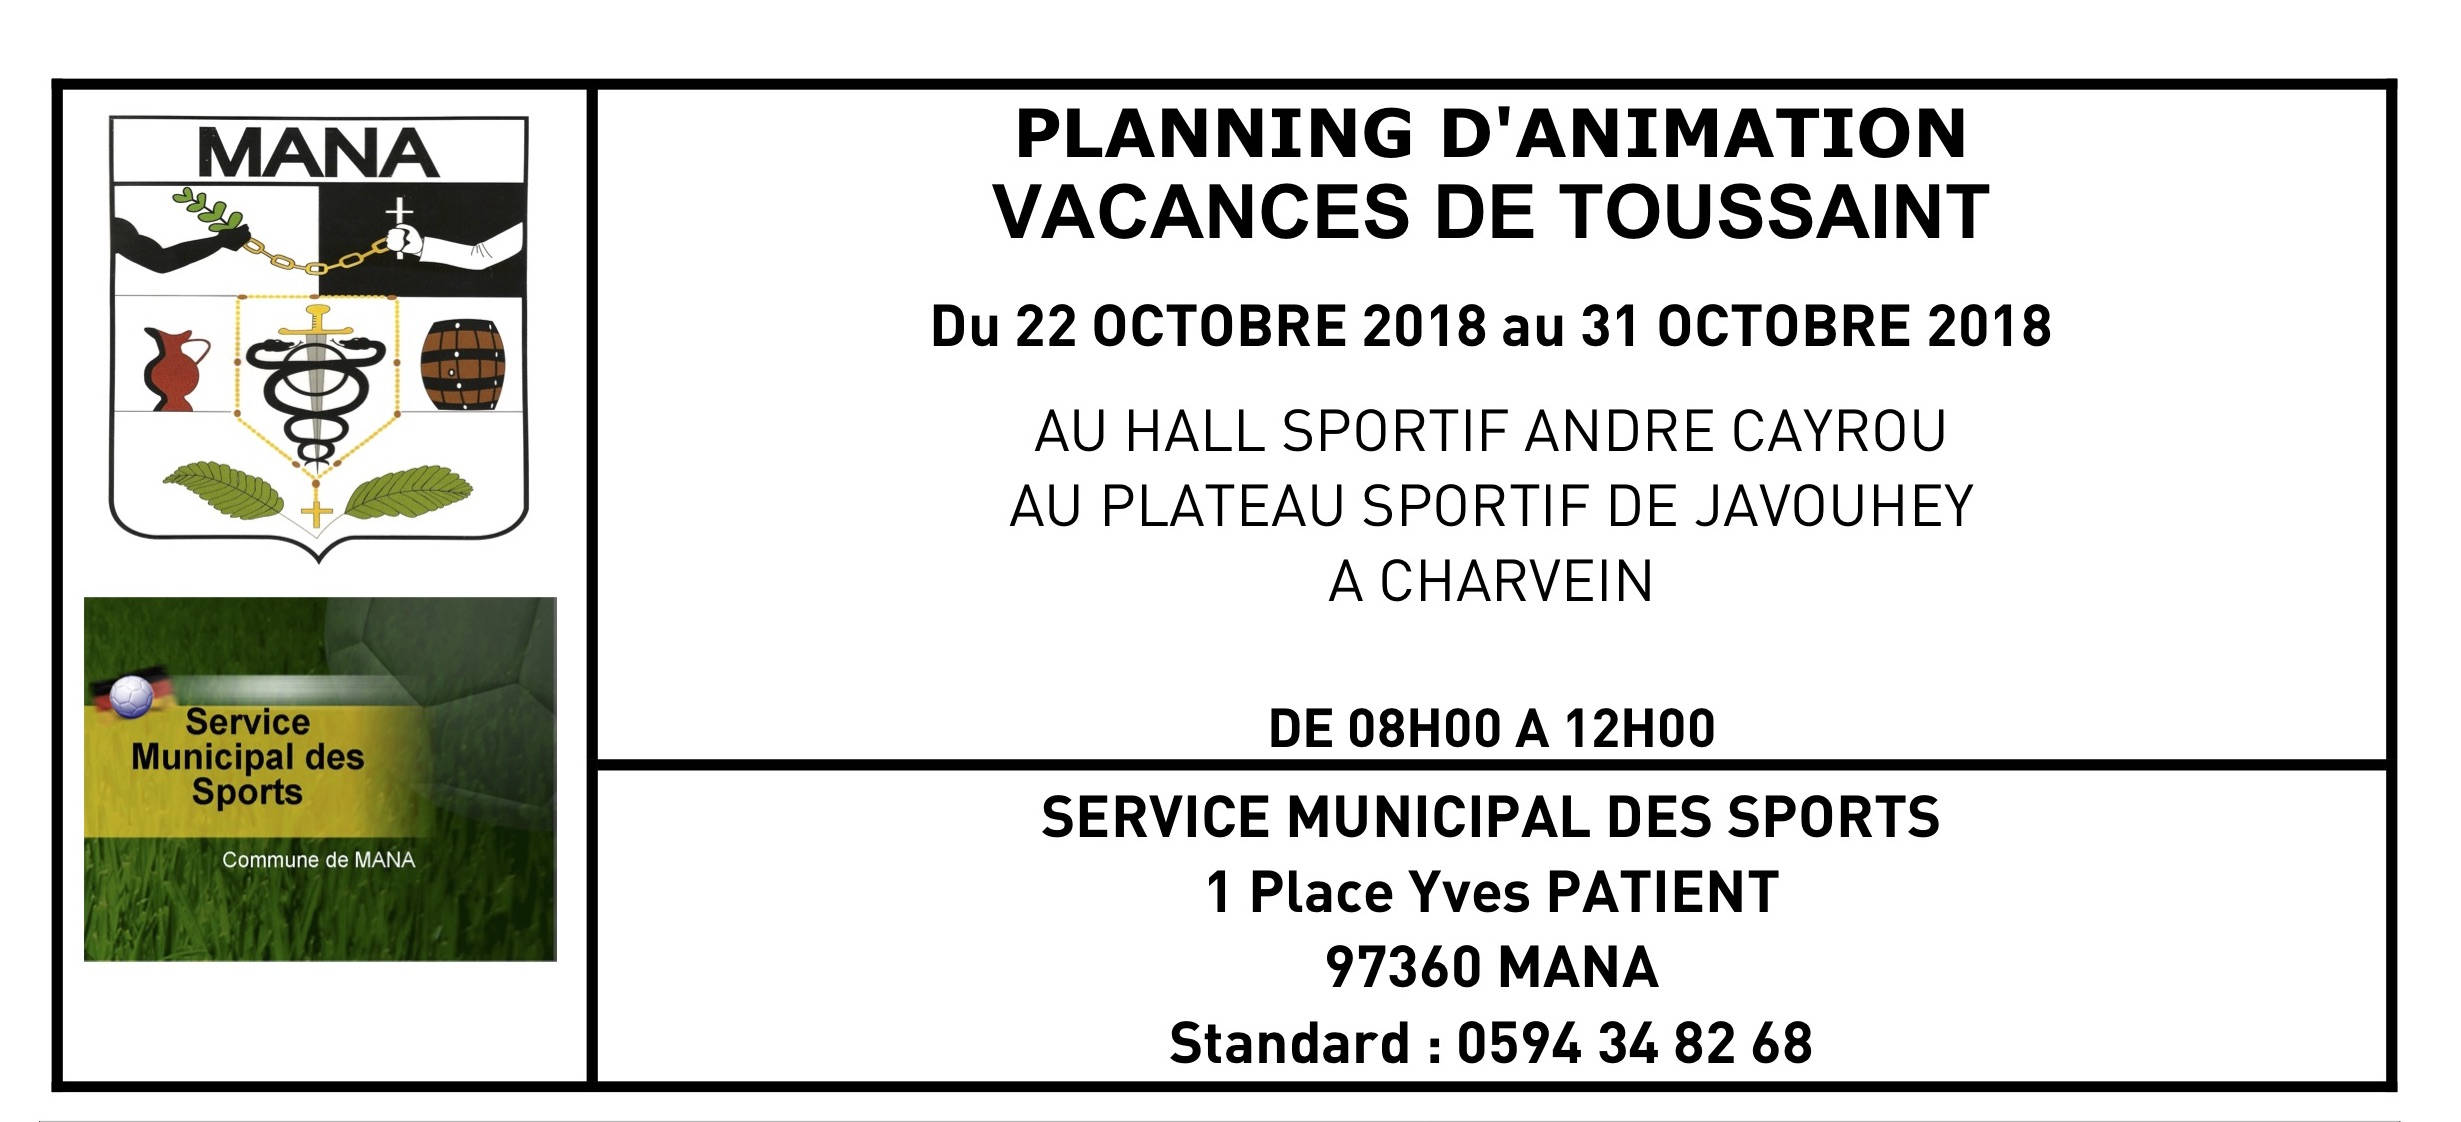 Planning d'animation Toussaint